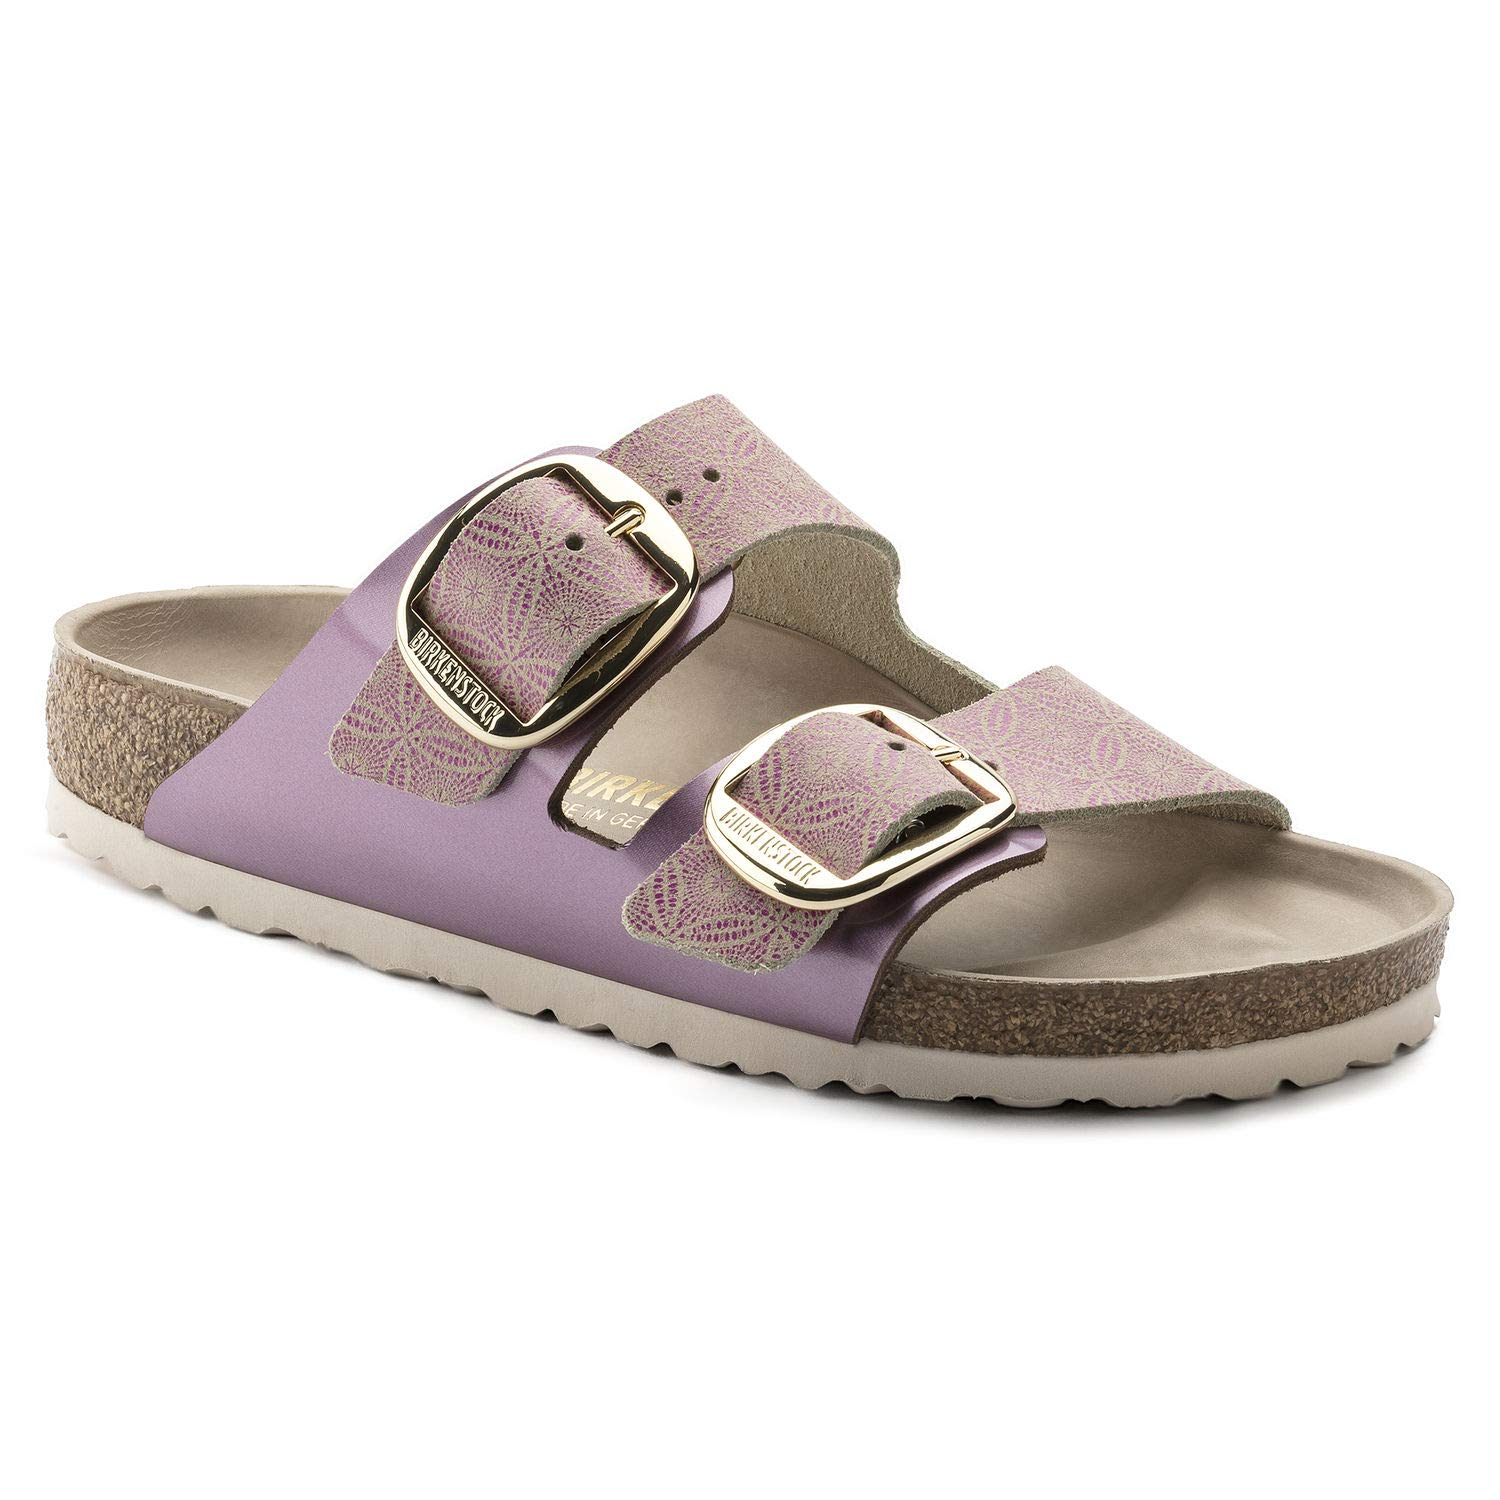 Birkenstock Arizona Hex Rose Leather 40 (US Women's 9-9.5)